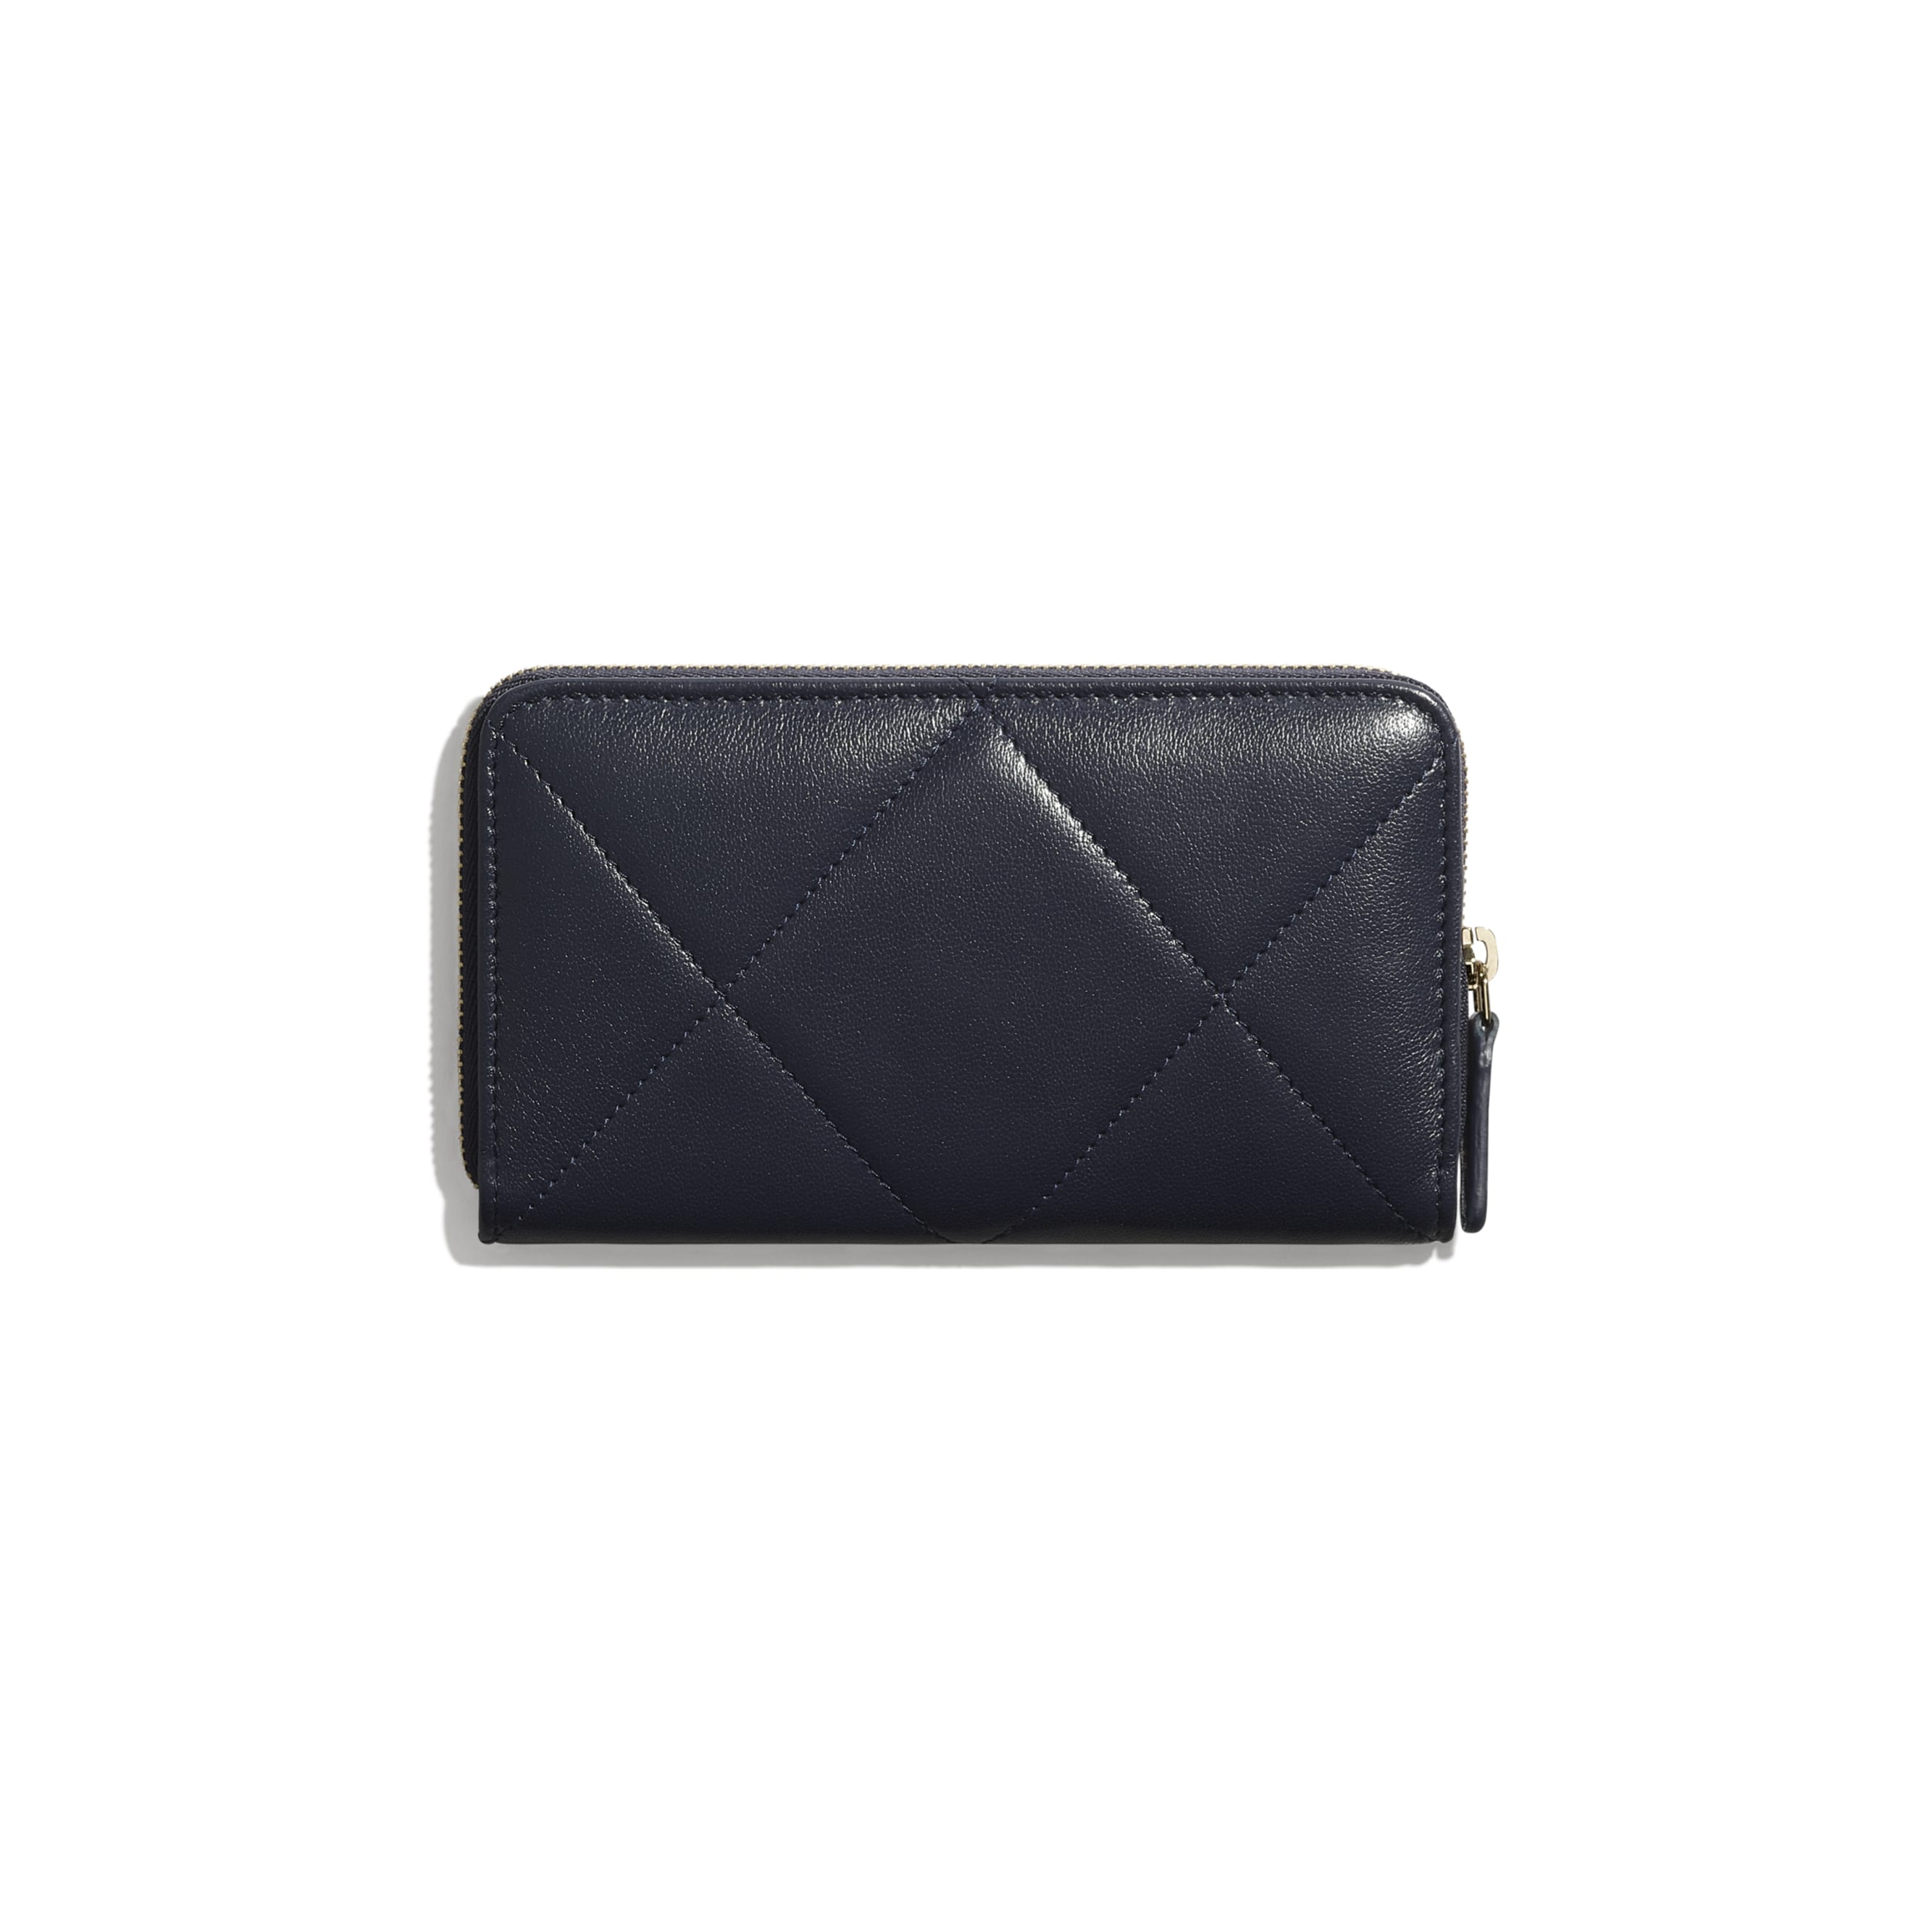 CHANEL 19 Zipped Wallet - Navy Blue - Lambskin, Gold-Tone, Silver-Tone & Ruthenium-Finish Metal - CHANEL - Alternative view - see standard sized version